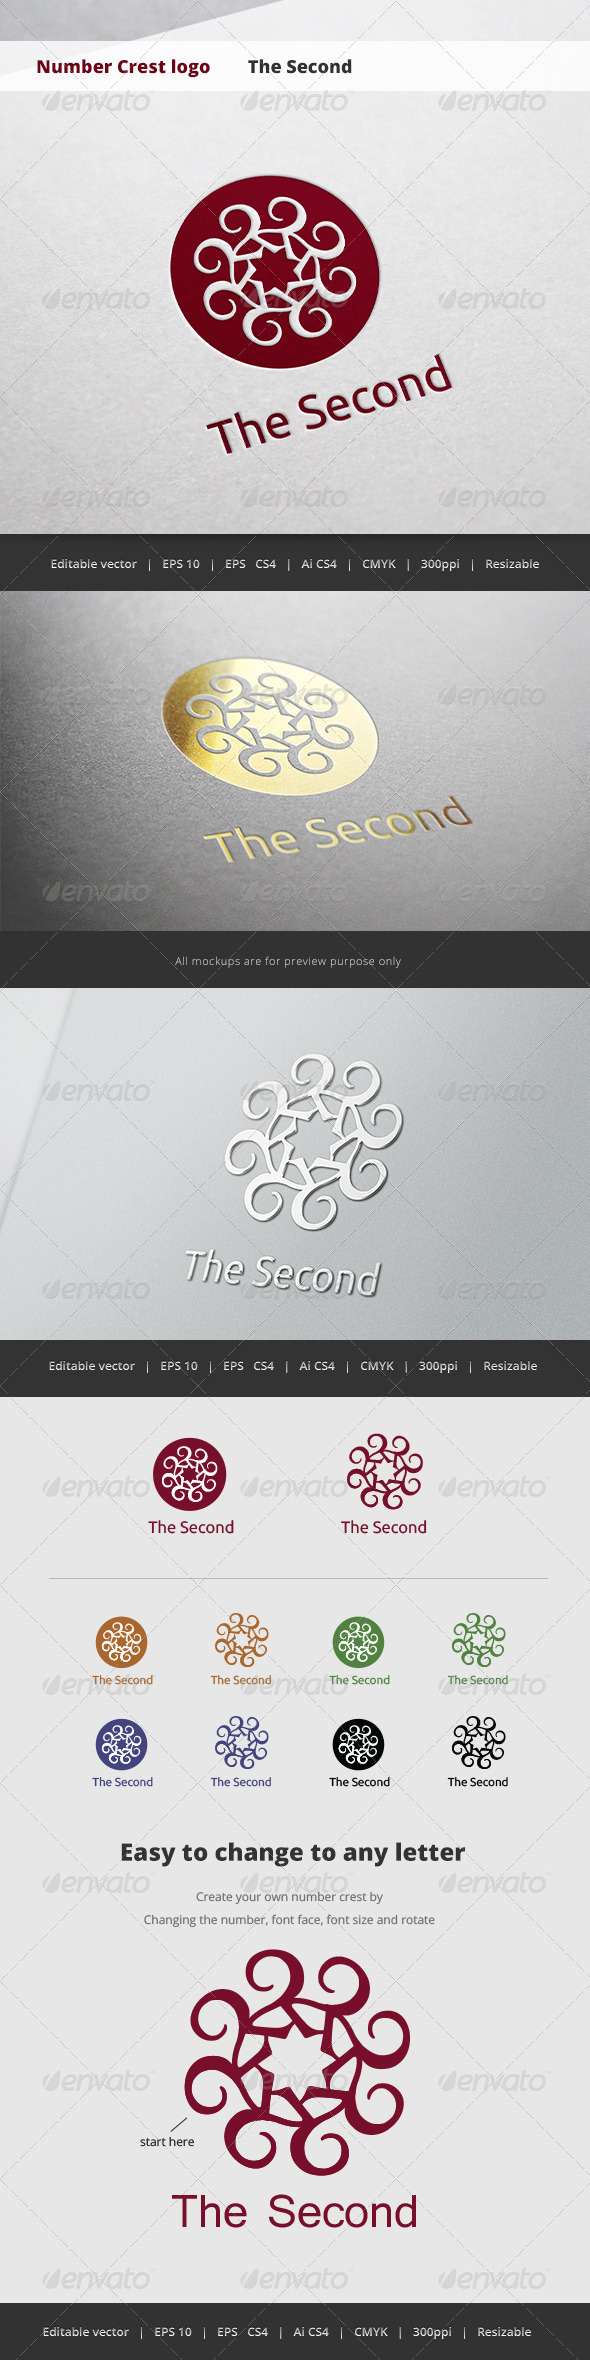 GraphicRiver The Second Number Crest Logo 5718650